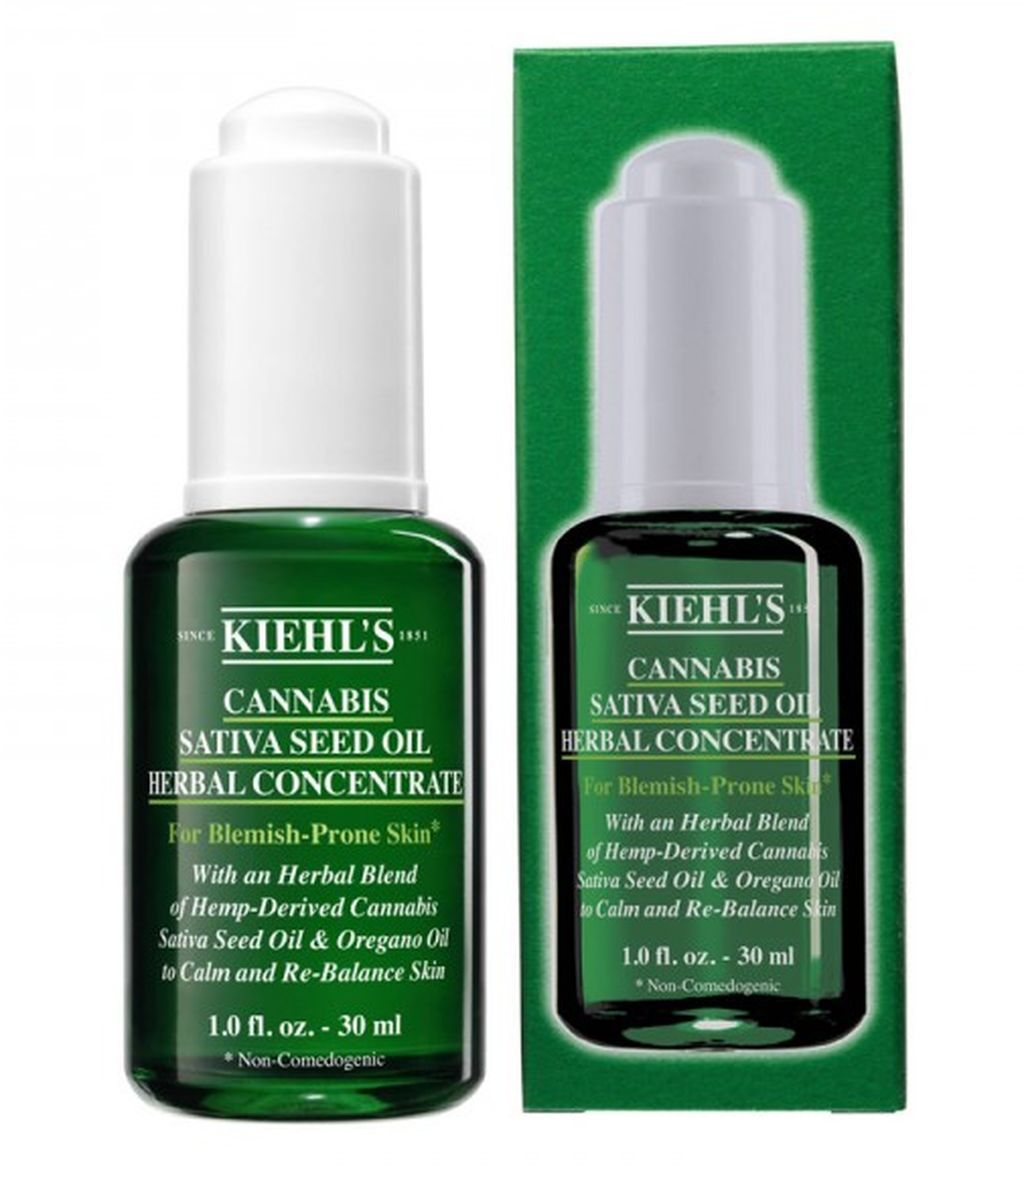 cannabis-sativa-seed-oil-herbal-concentrate-kiehls